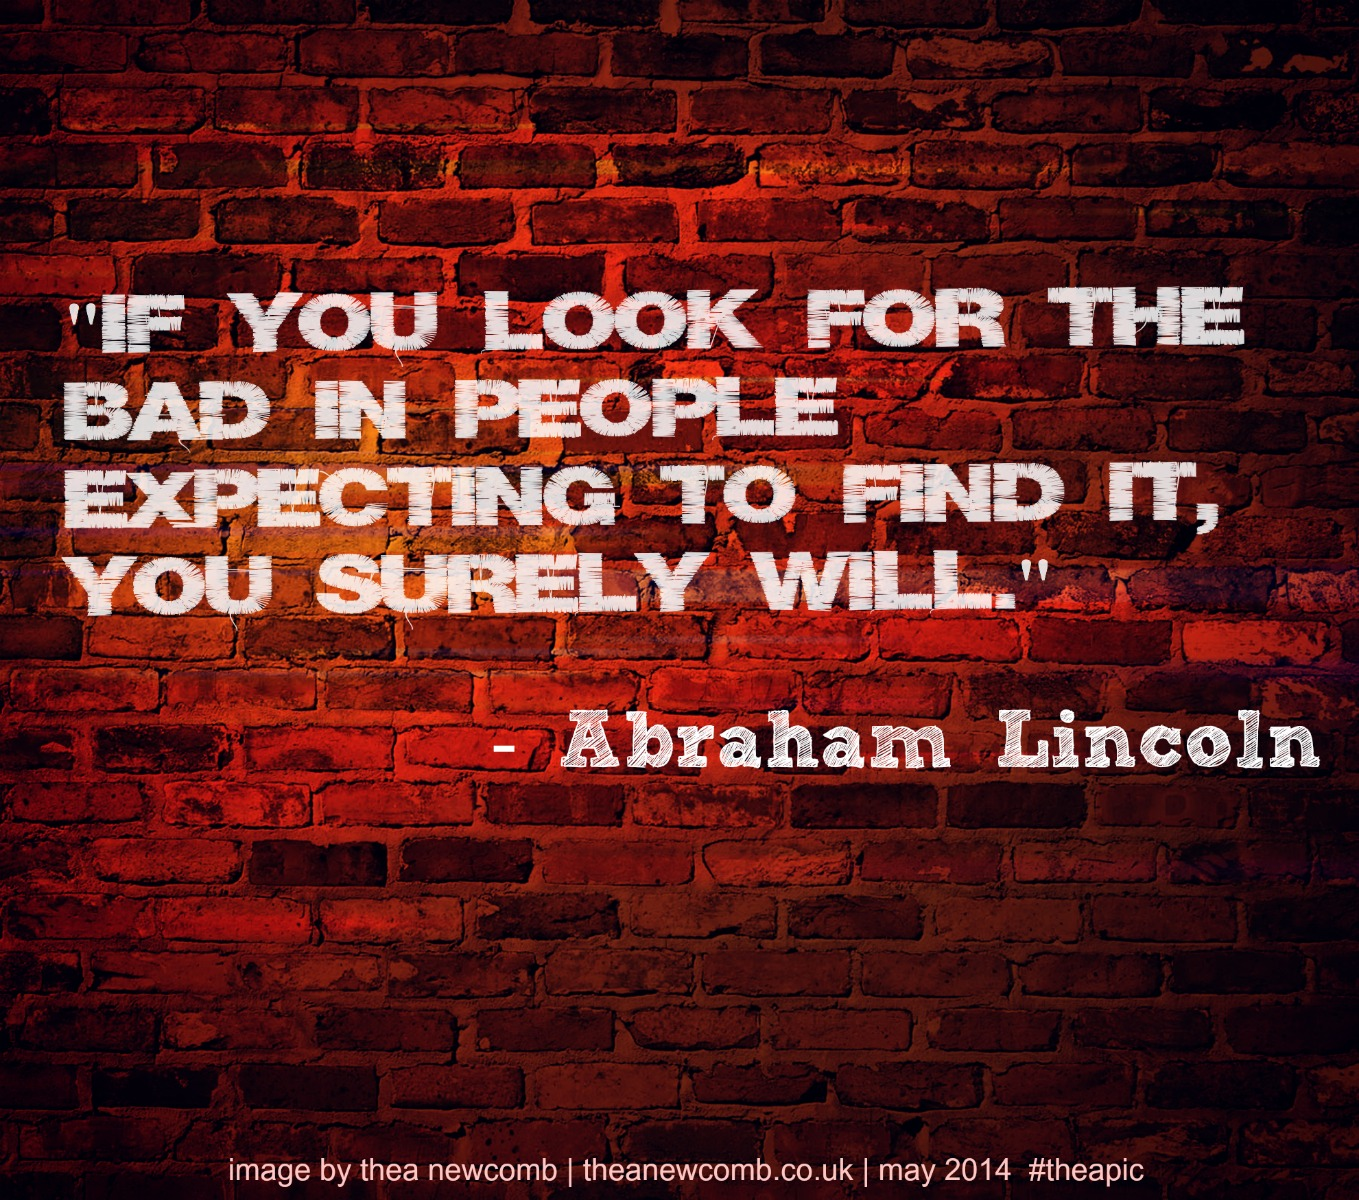 Lincoln quote: If you look for bad in people expecting to find it, you surely will.